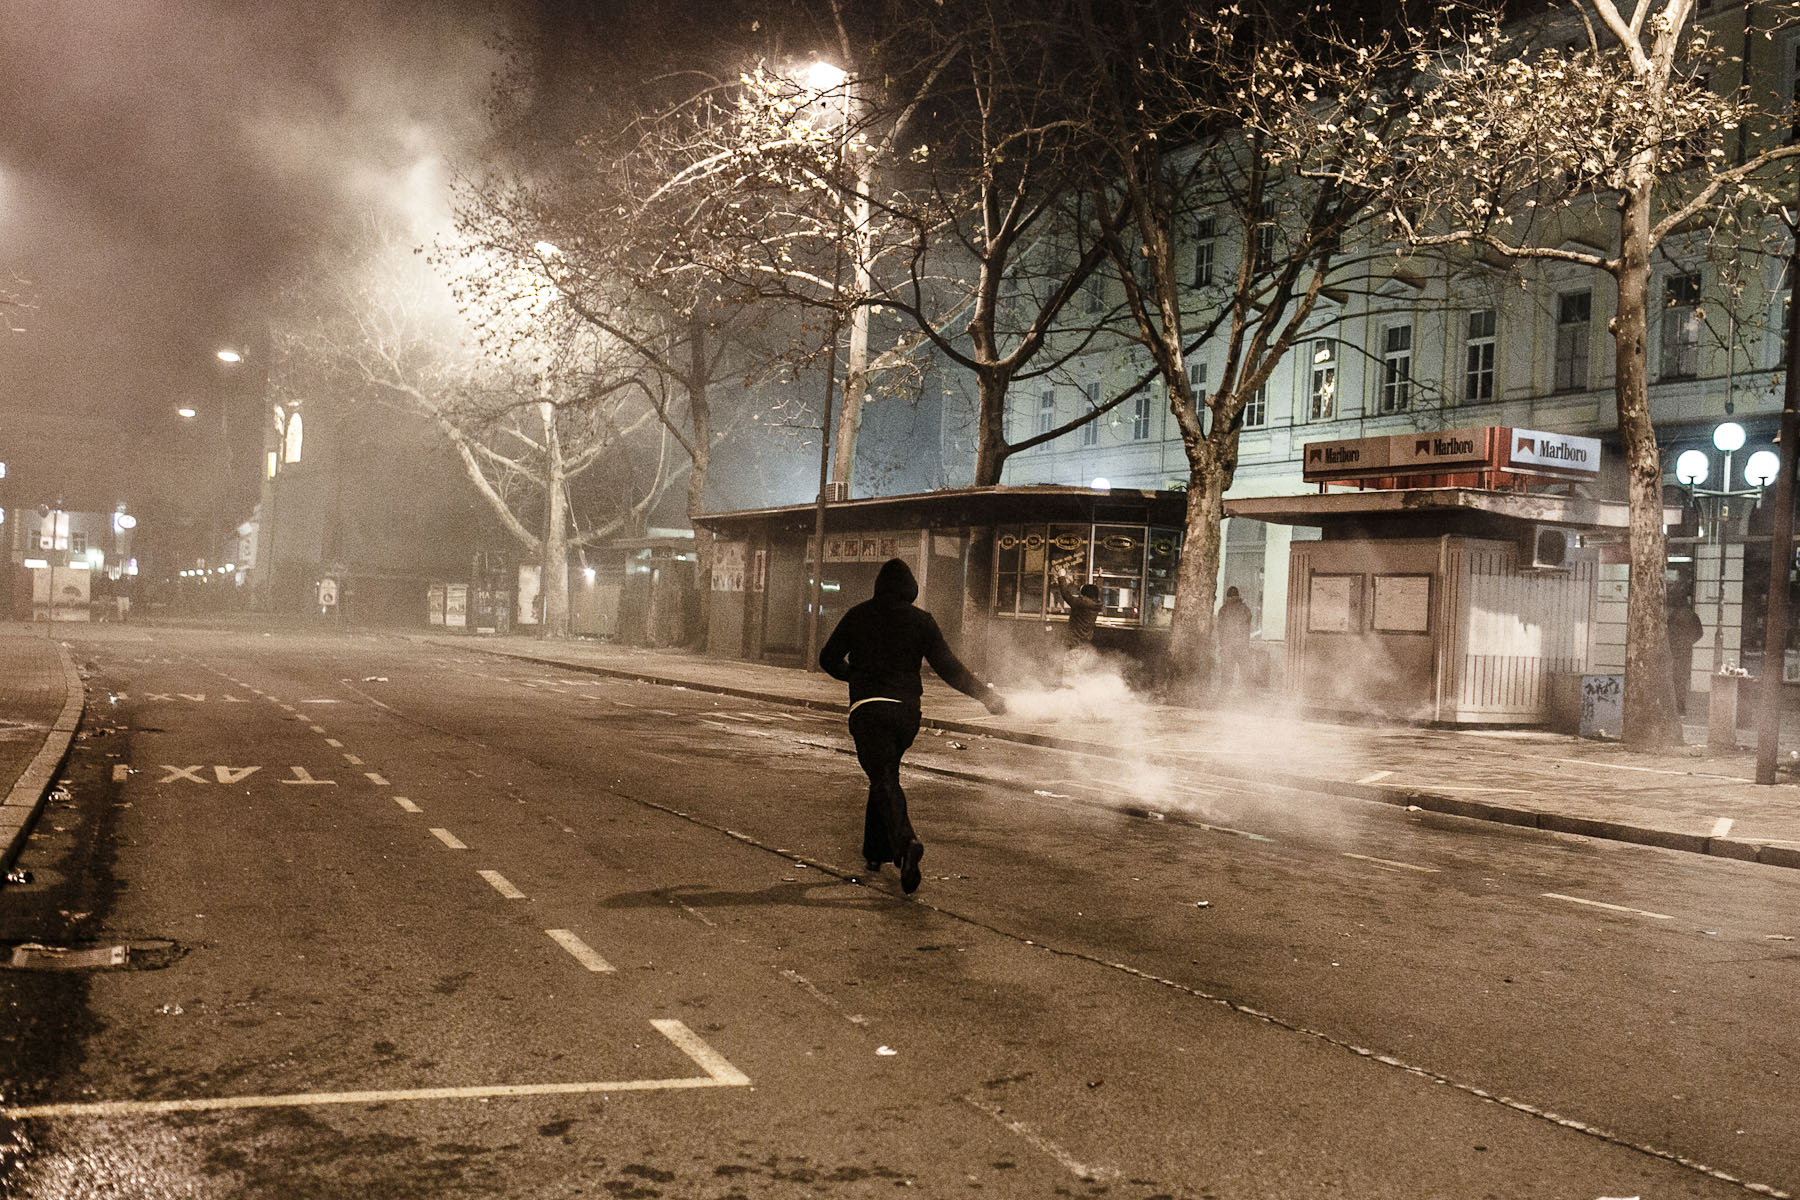 A protester carries a smoke bomb to throw to the police during protests against the mayor of Maribor Franc Kangler in Maribor, Slovenia, on December 3, 2012.